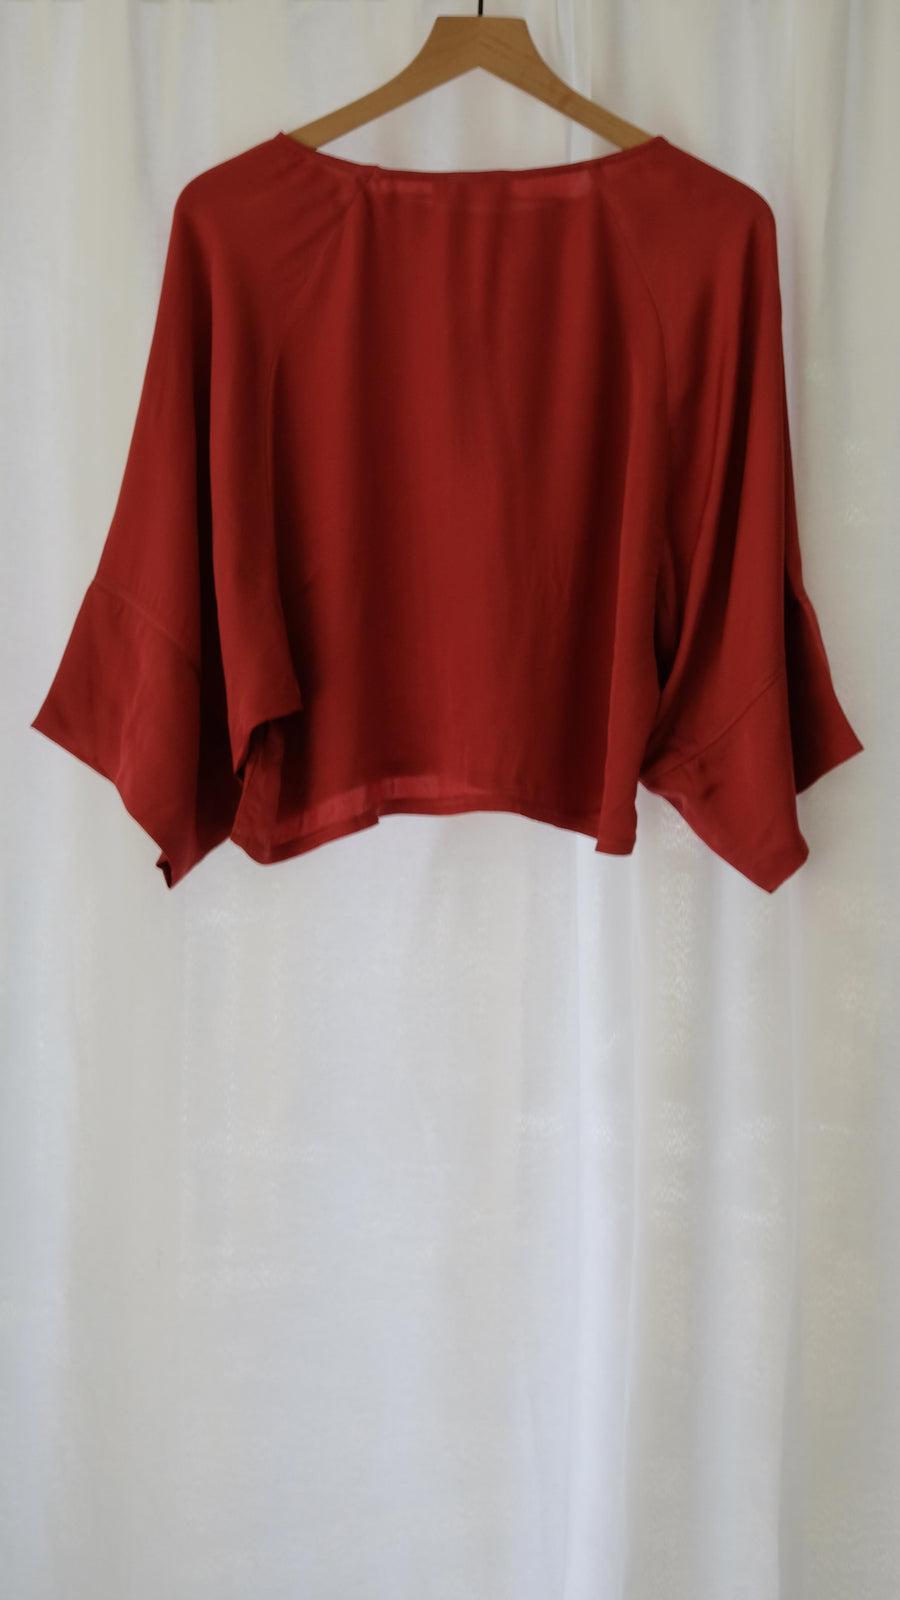 Goya Kimono Tee in Marsala by Nation LTD